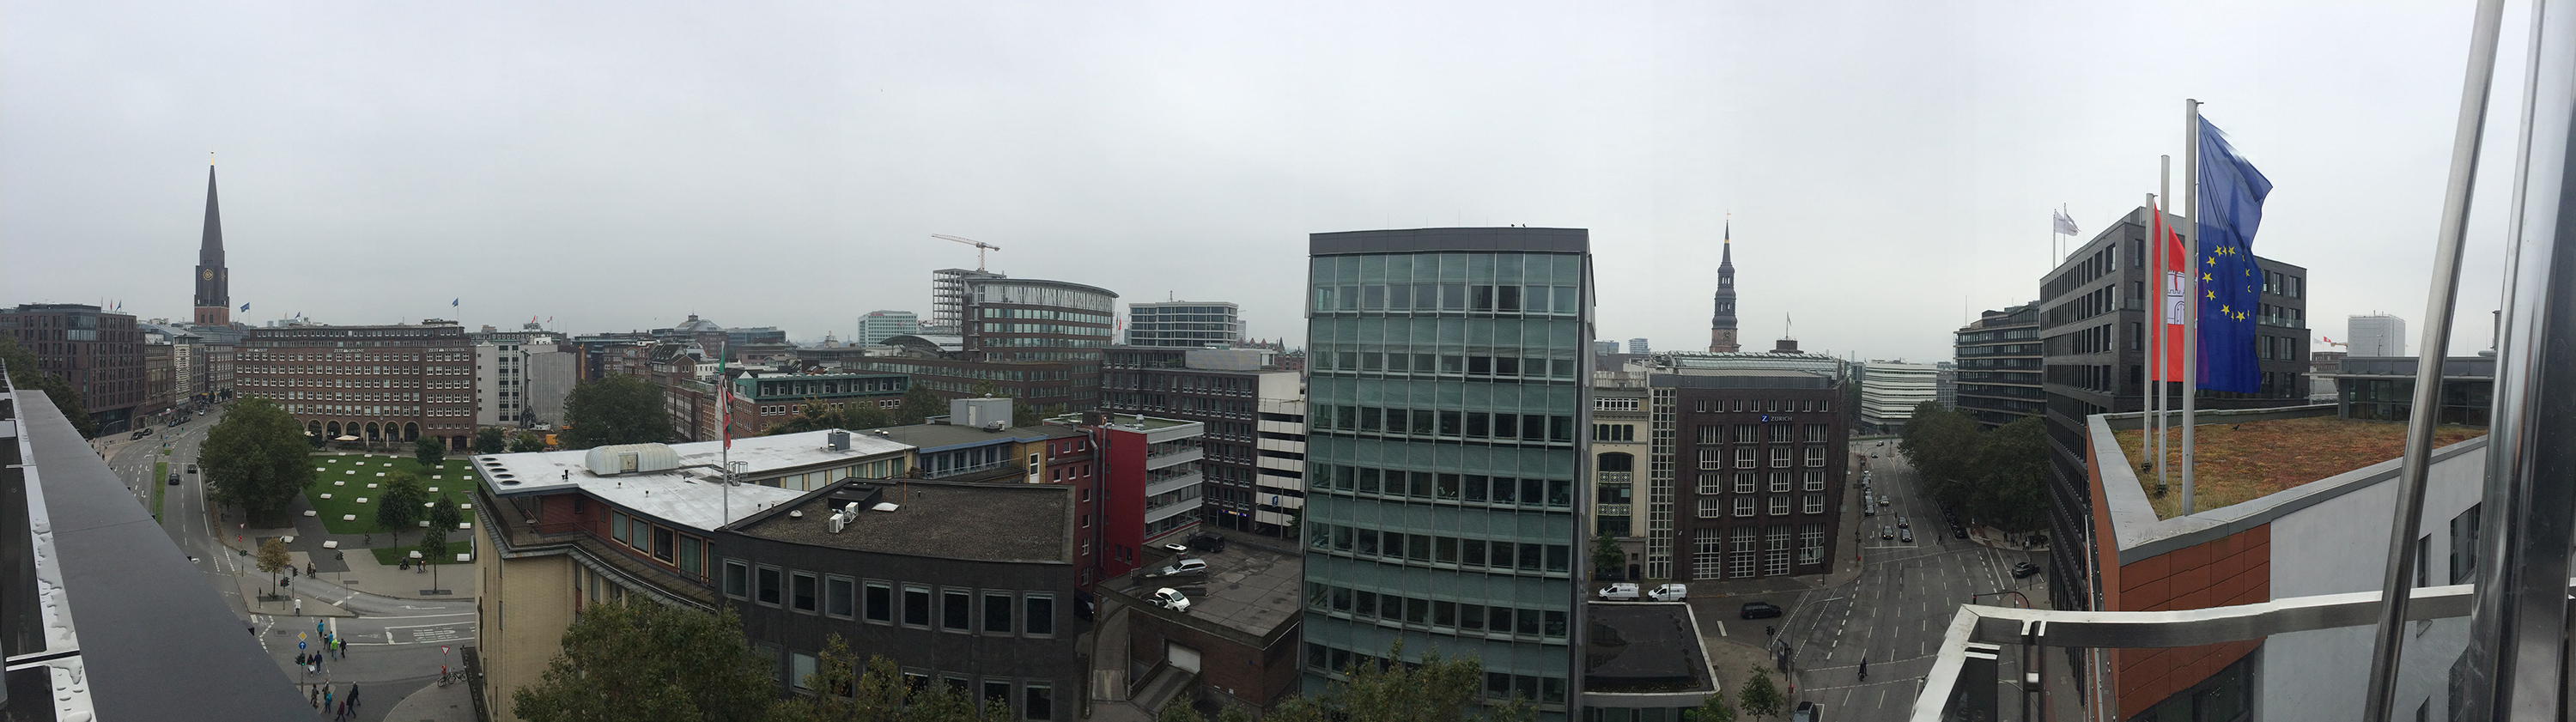 panorama-hamburg